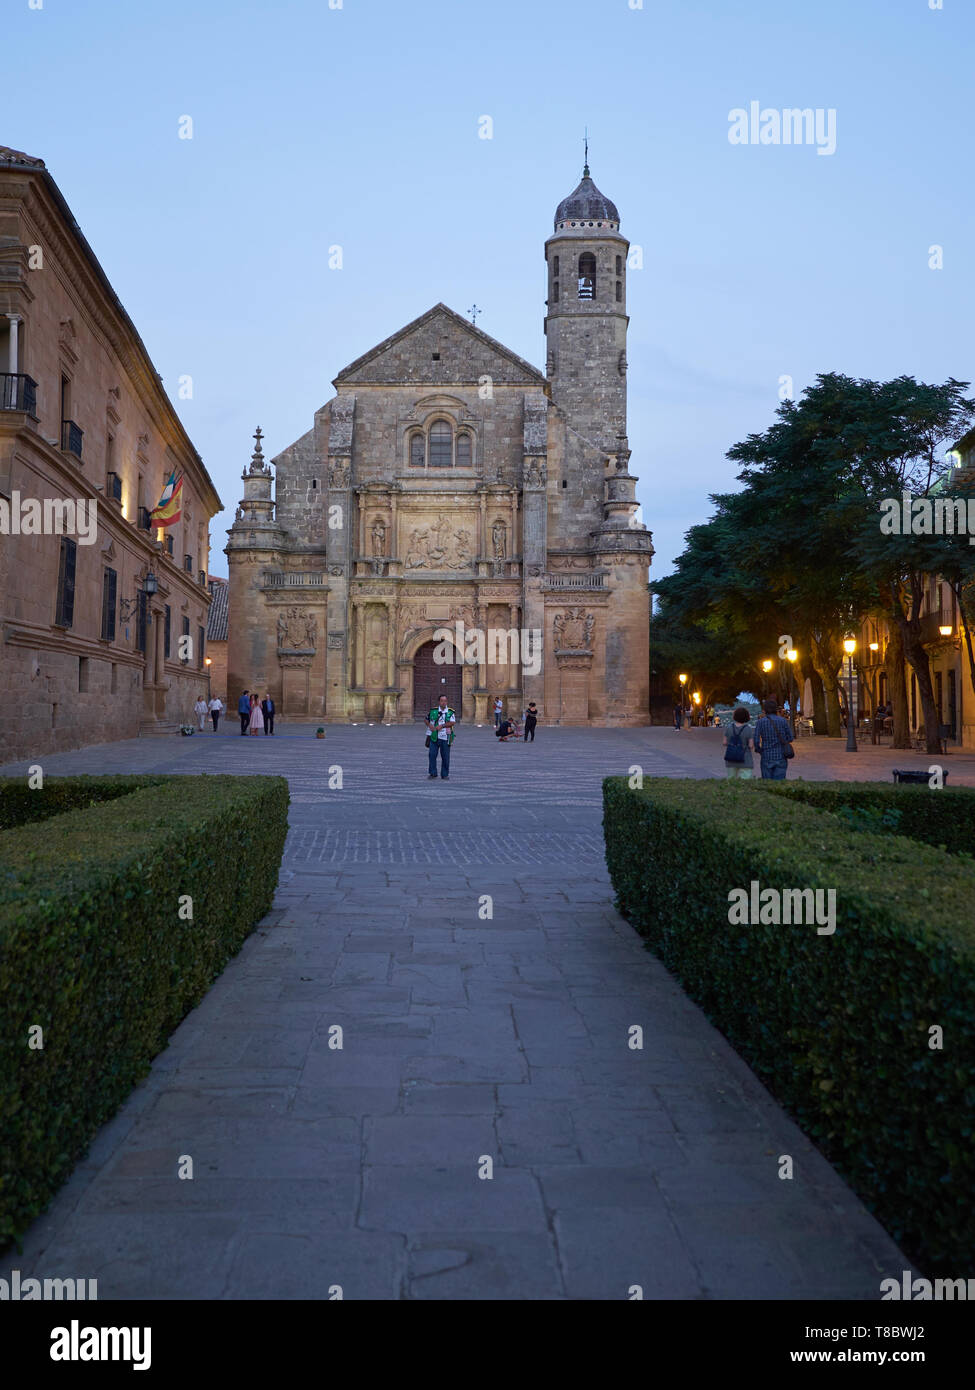 Church of El Salvador - Unesco World Heritage -. Úbeda, Jaén, Andalusia, Spain. Stock Photo